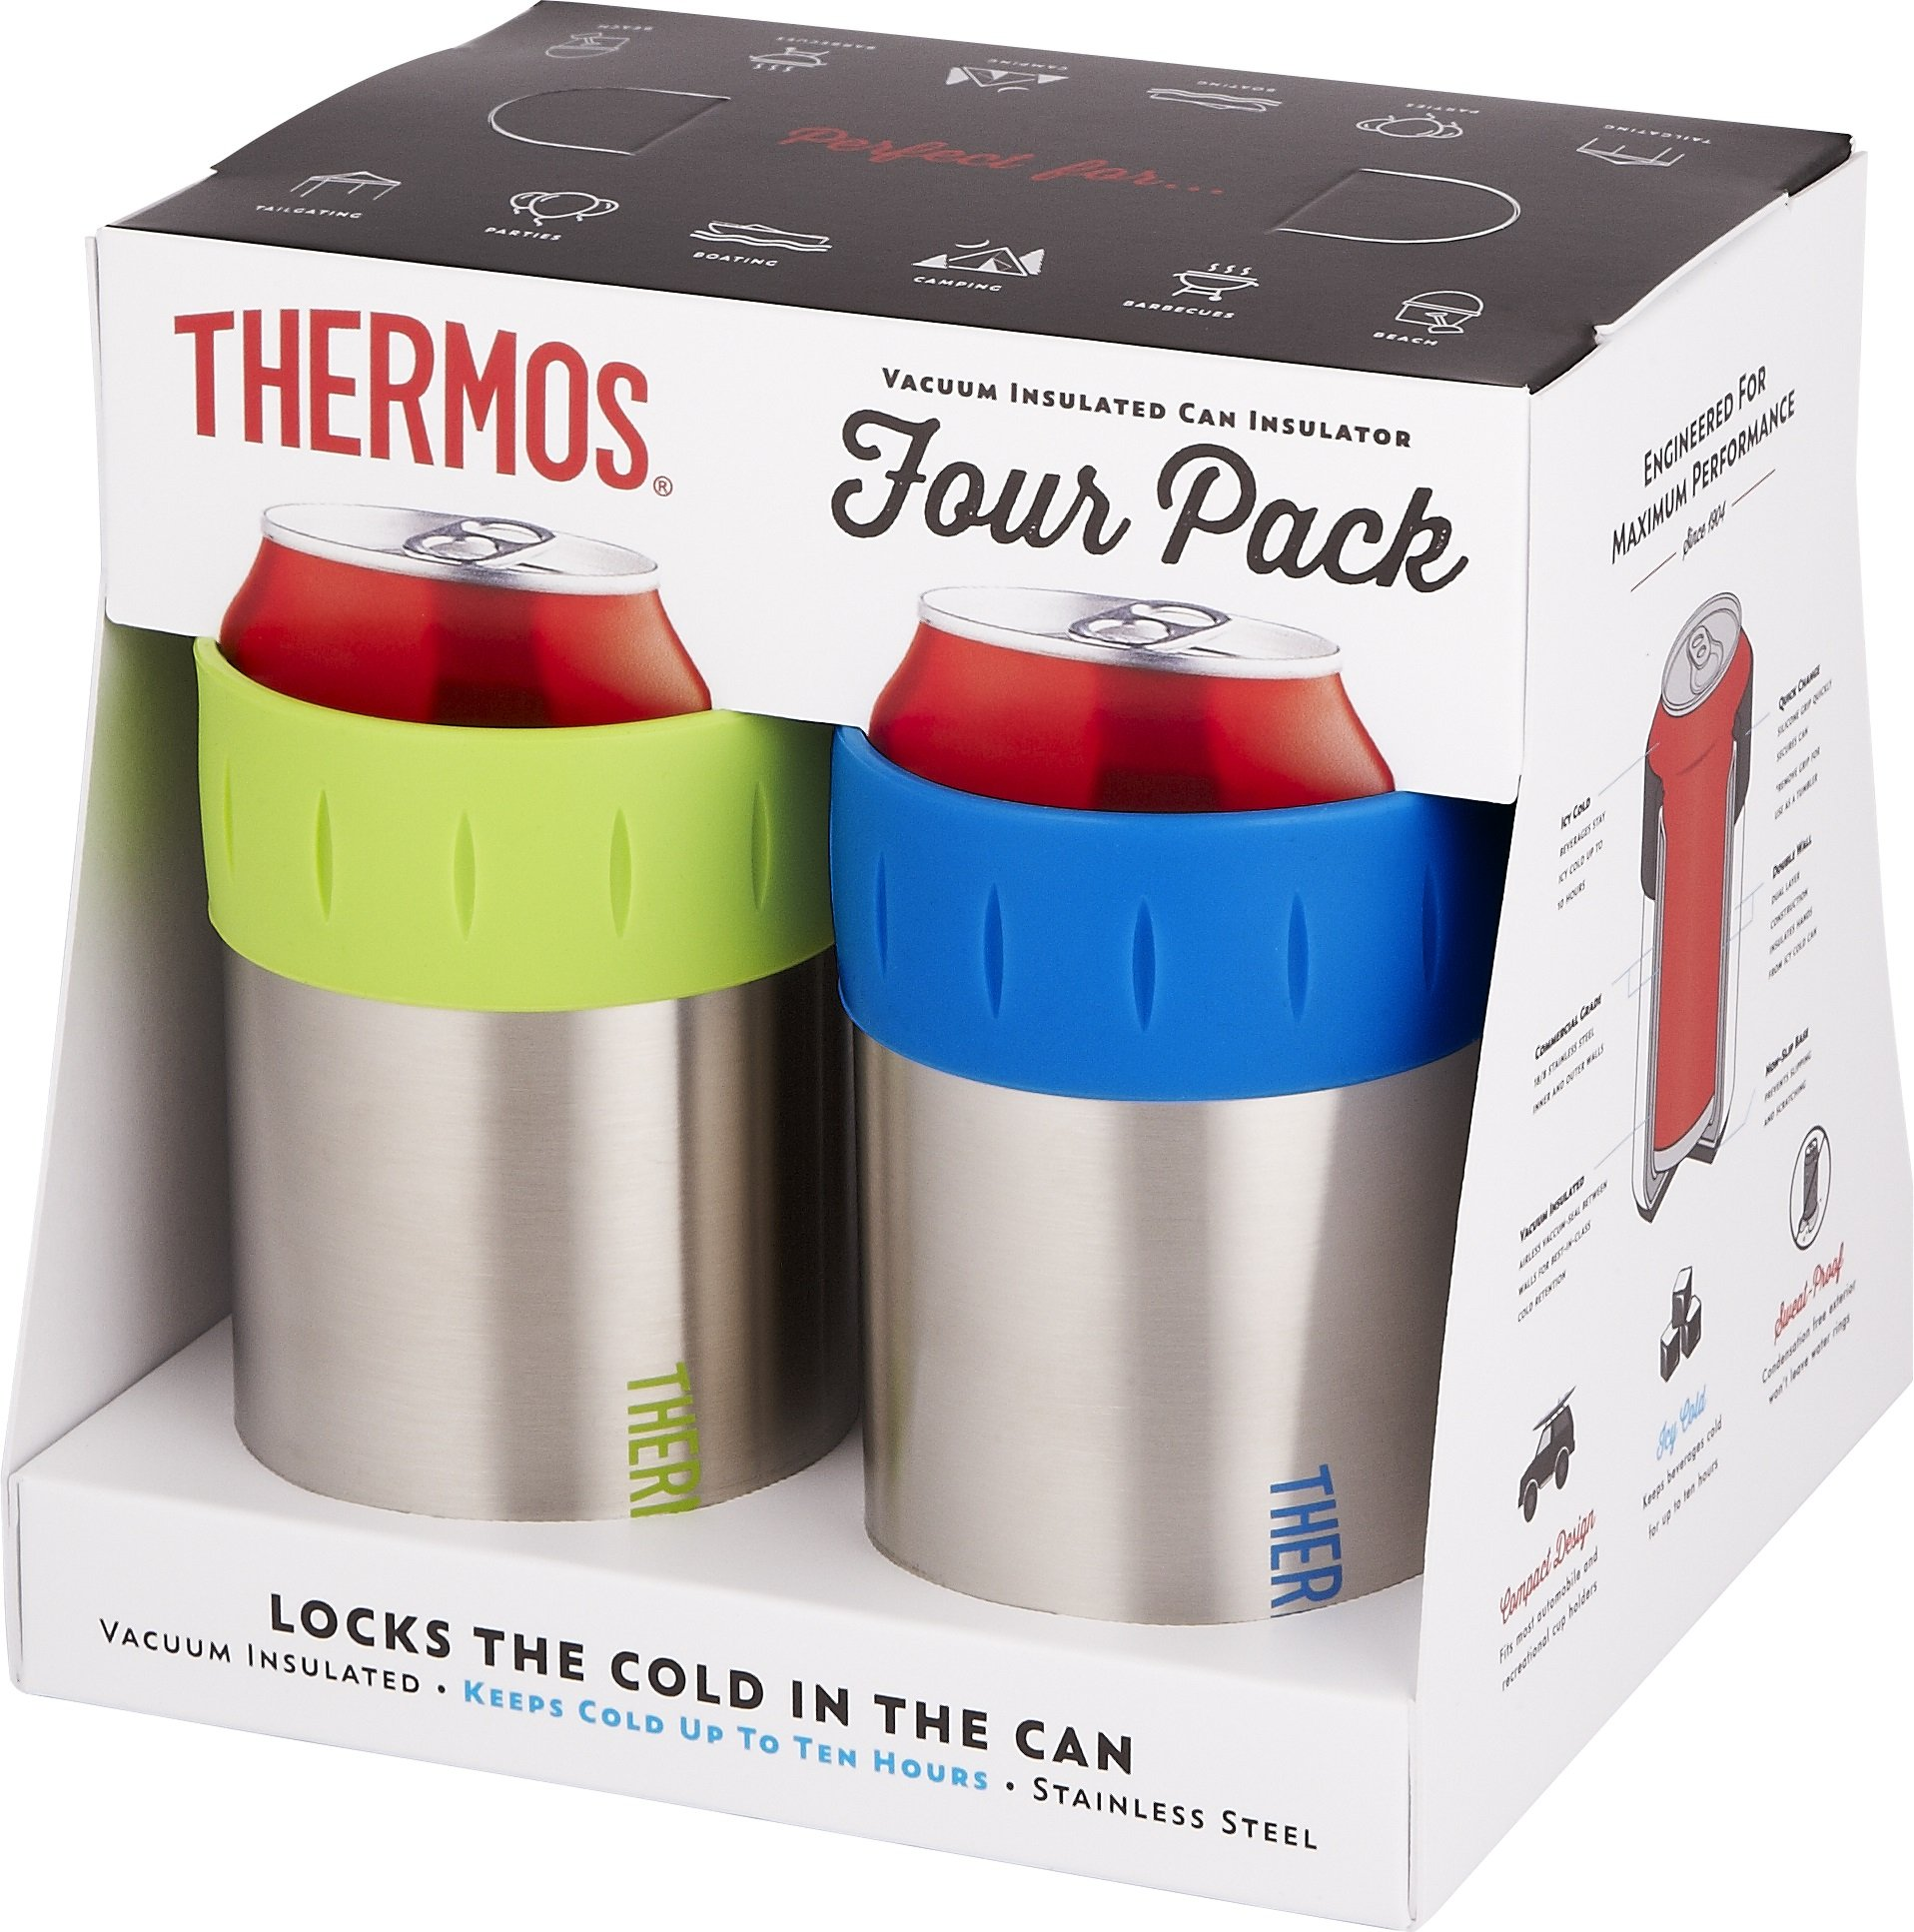 Thermos Stainless Vacuum Insulated 12 oz Can Insulator (Set of 4), Multicolor by Thermos